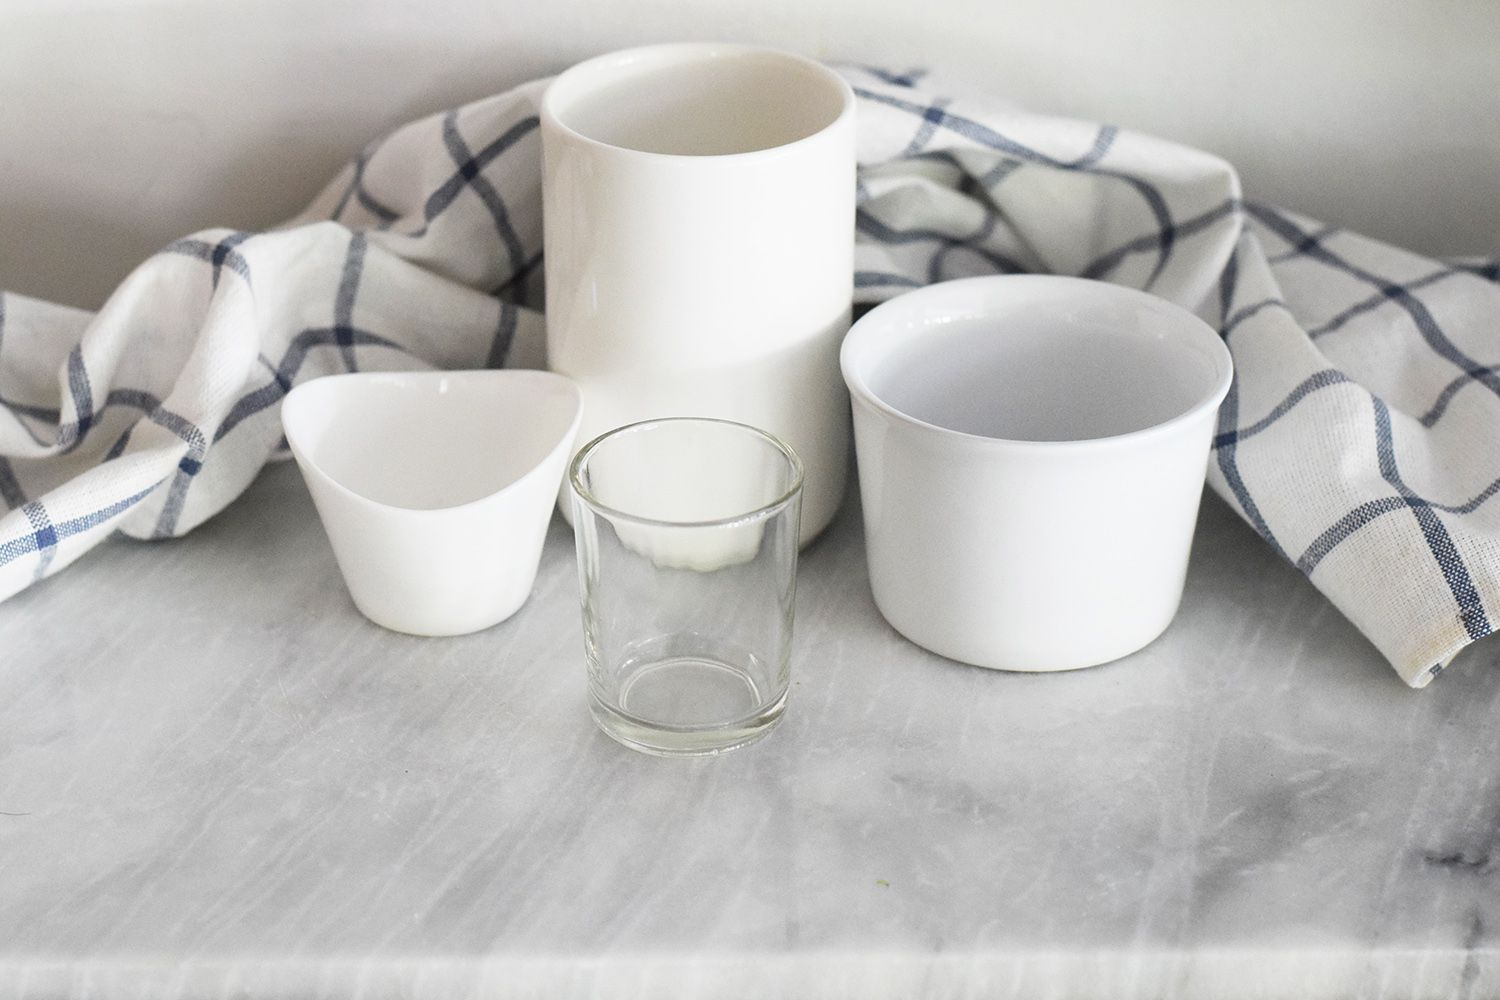 Serving containers and glass